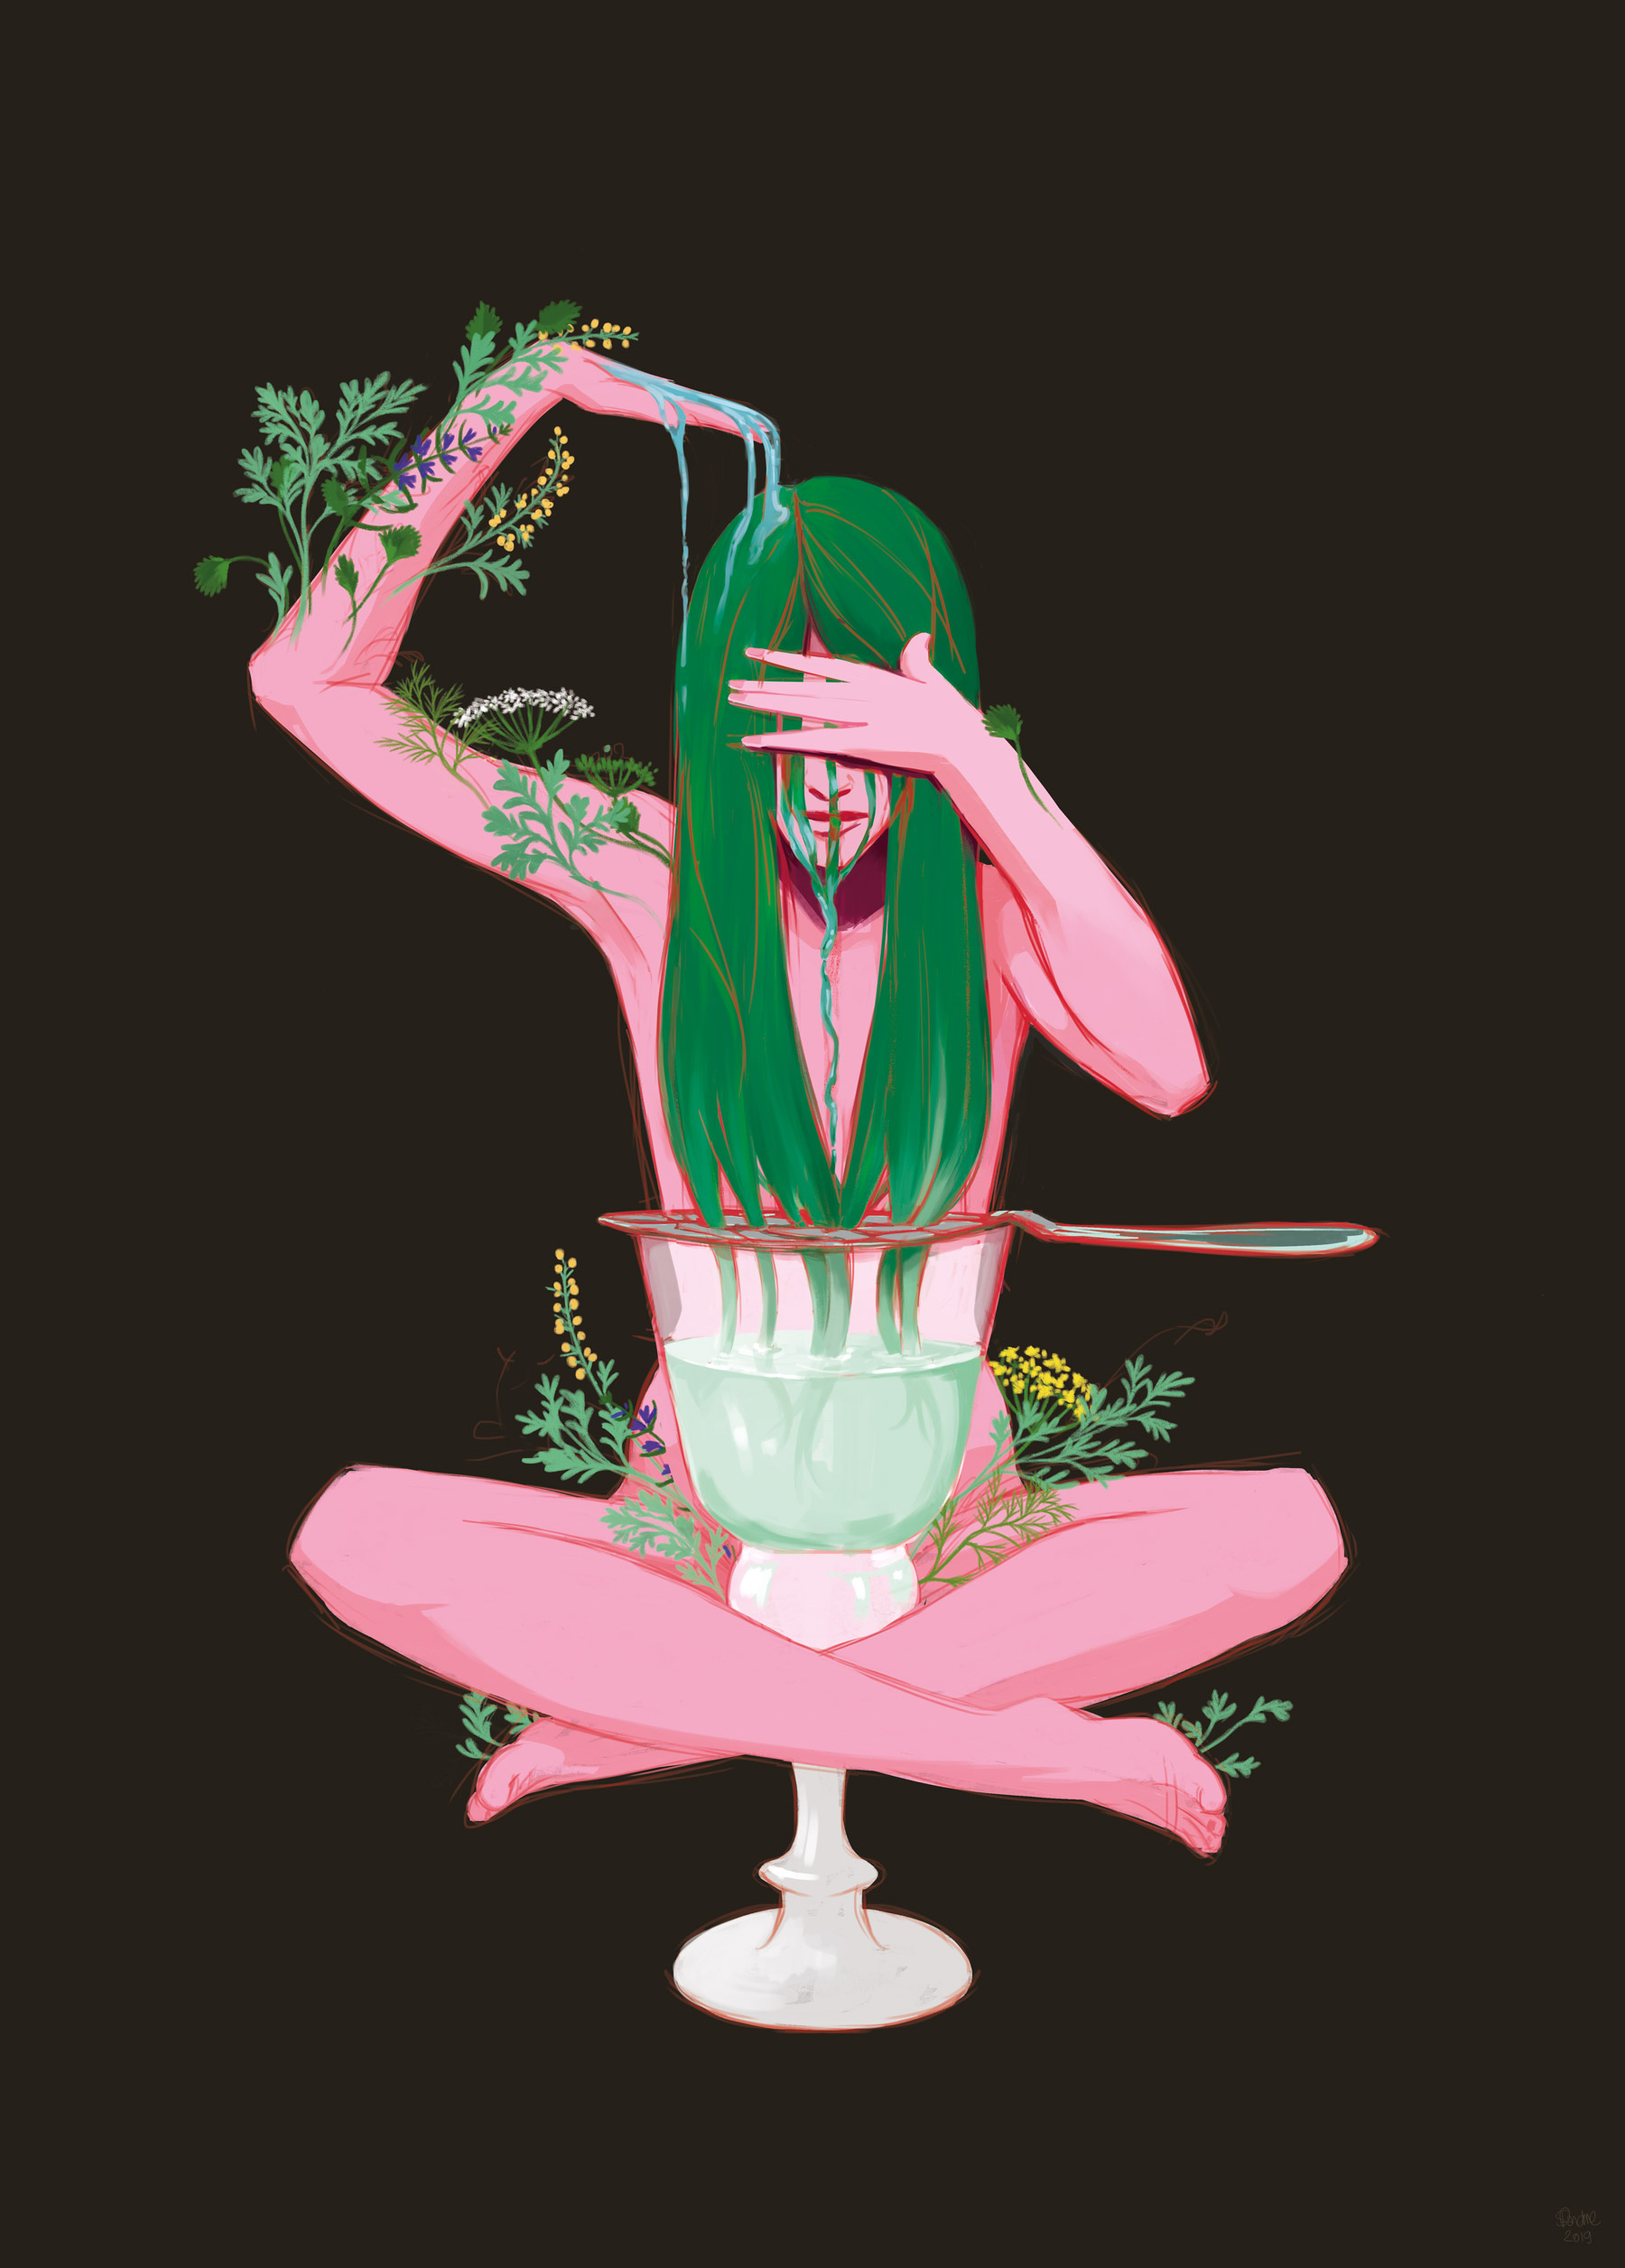 Illustration de Sandrine Pilloud | Absinthe | Exposition pbk9